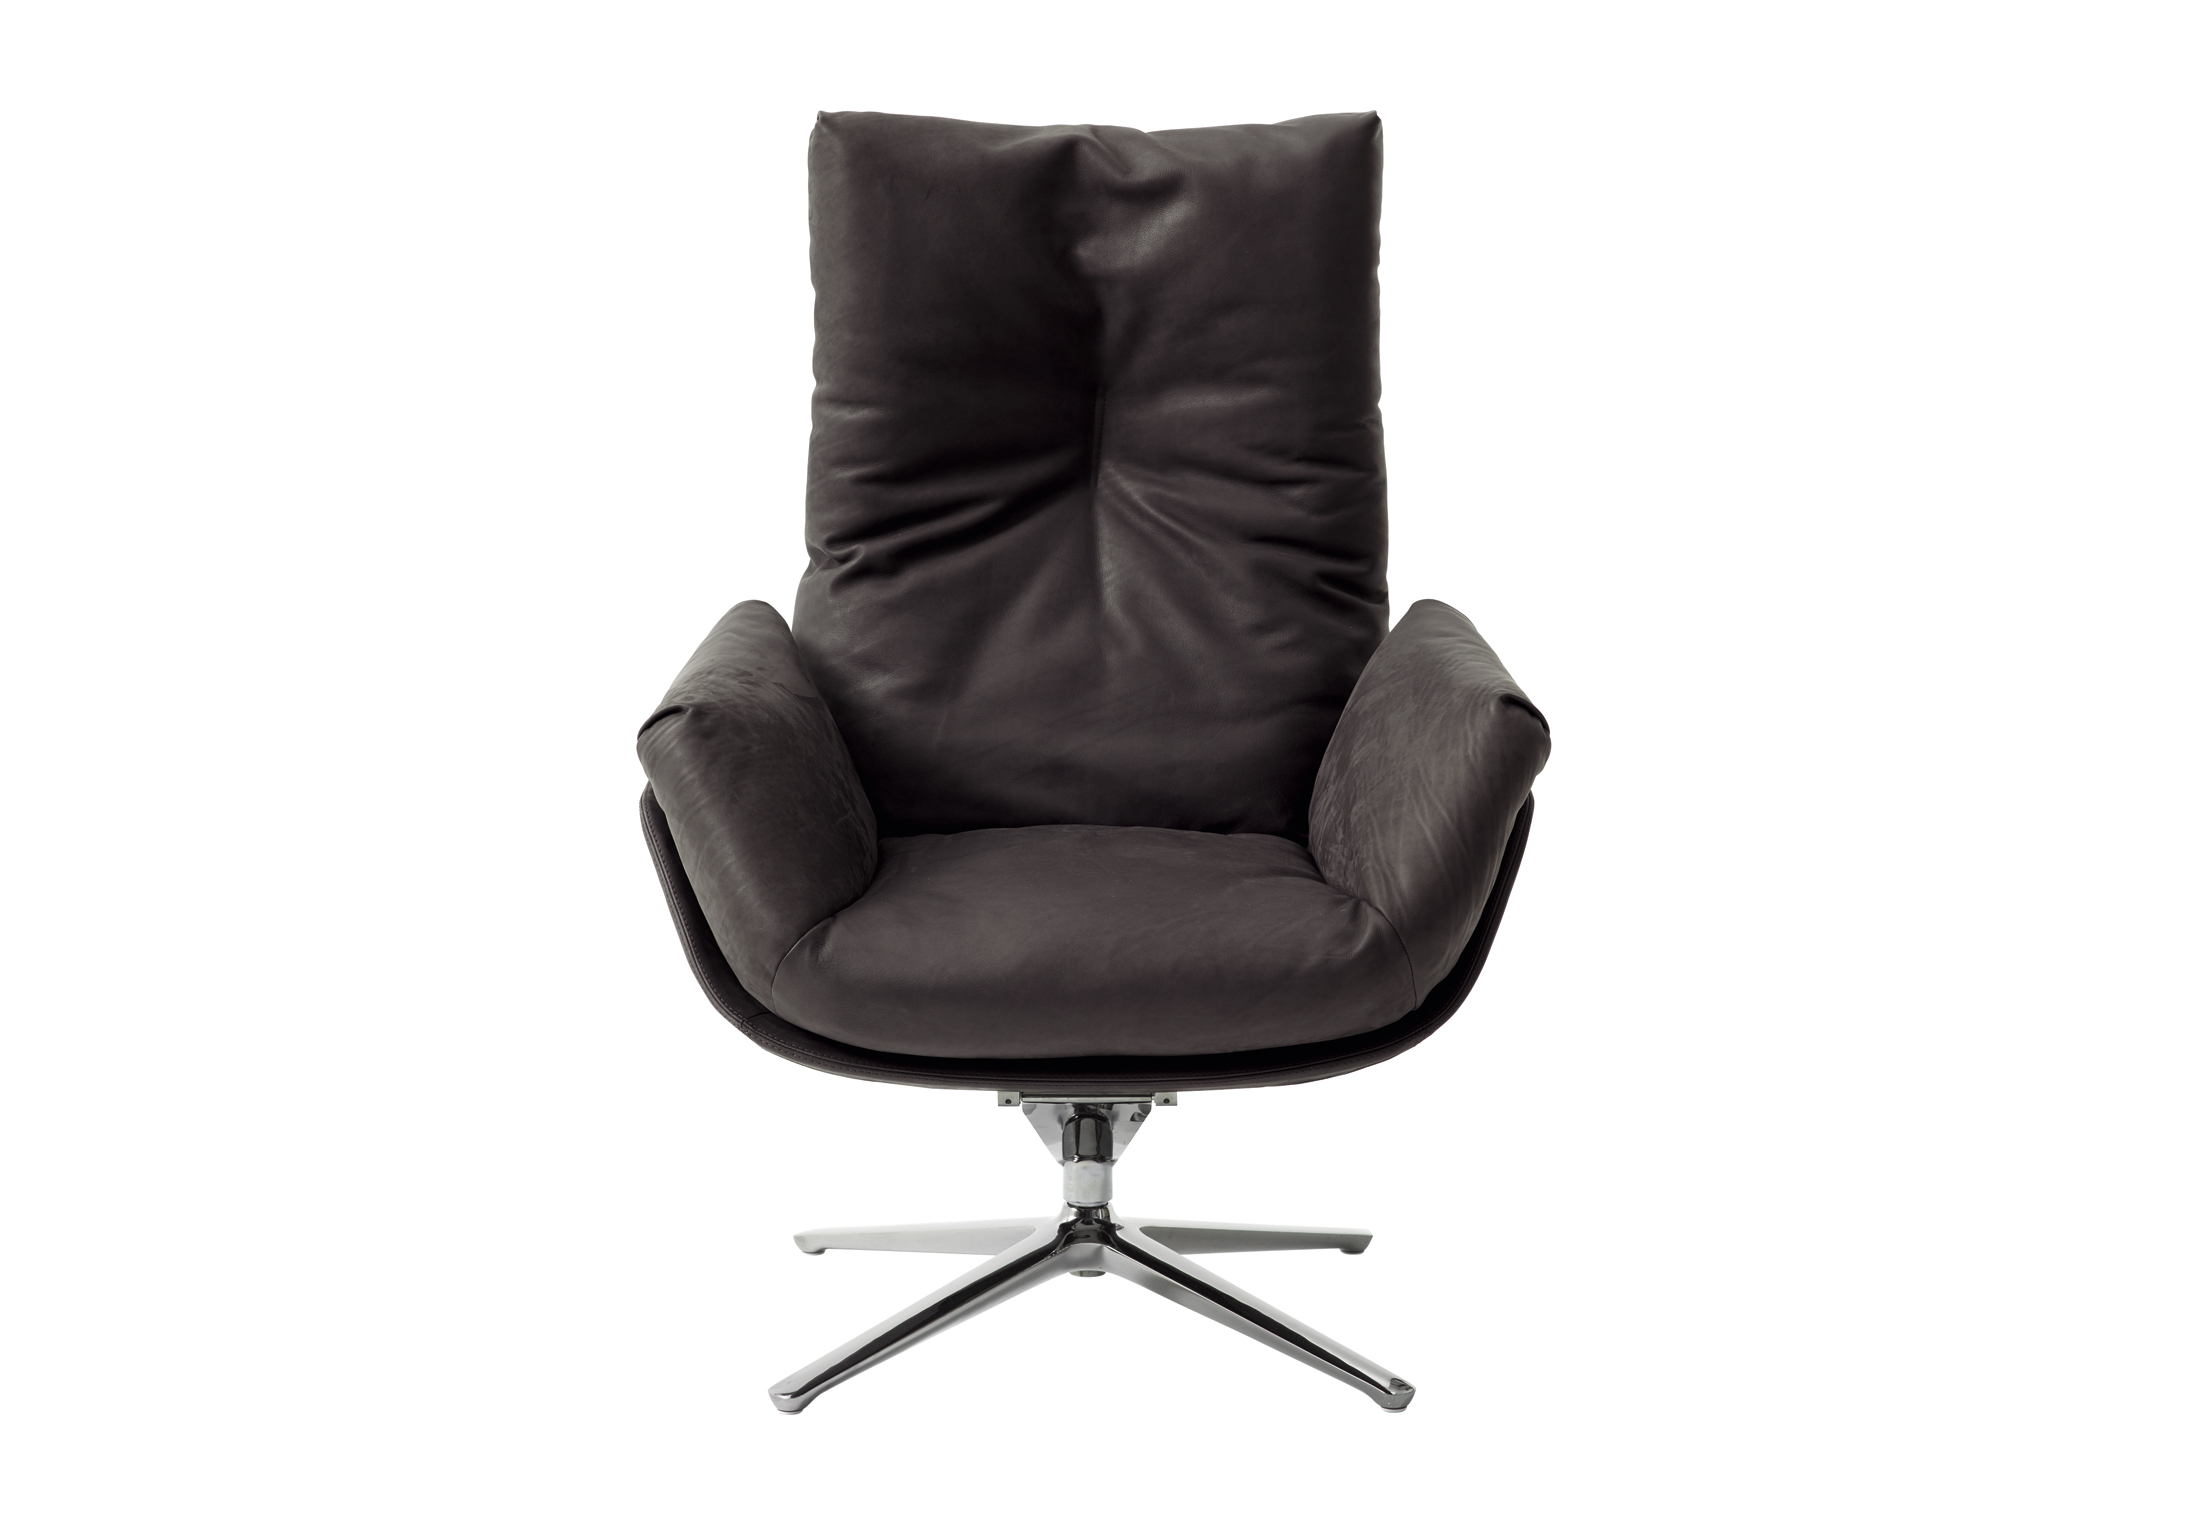 cordia lounge chair by jehs laub for cor sohomod blog